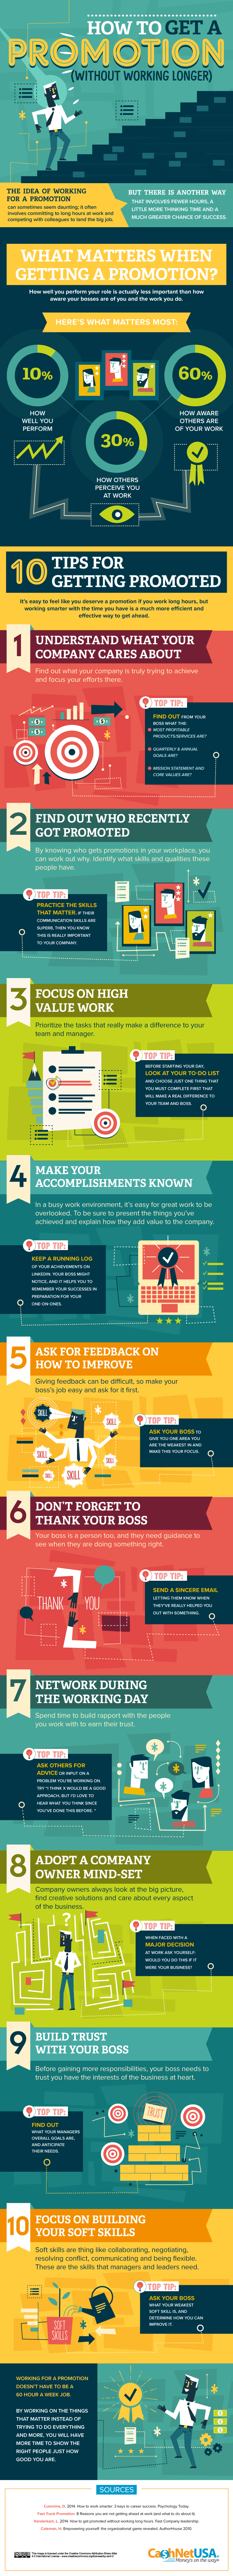 How to get a promotion infographic